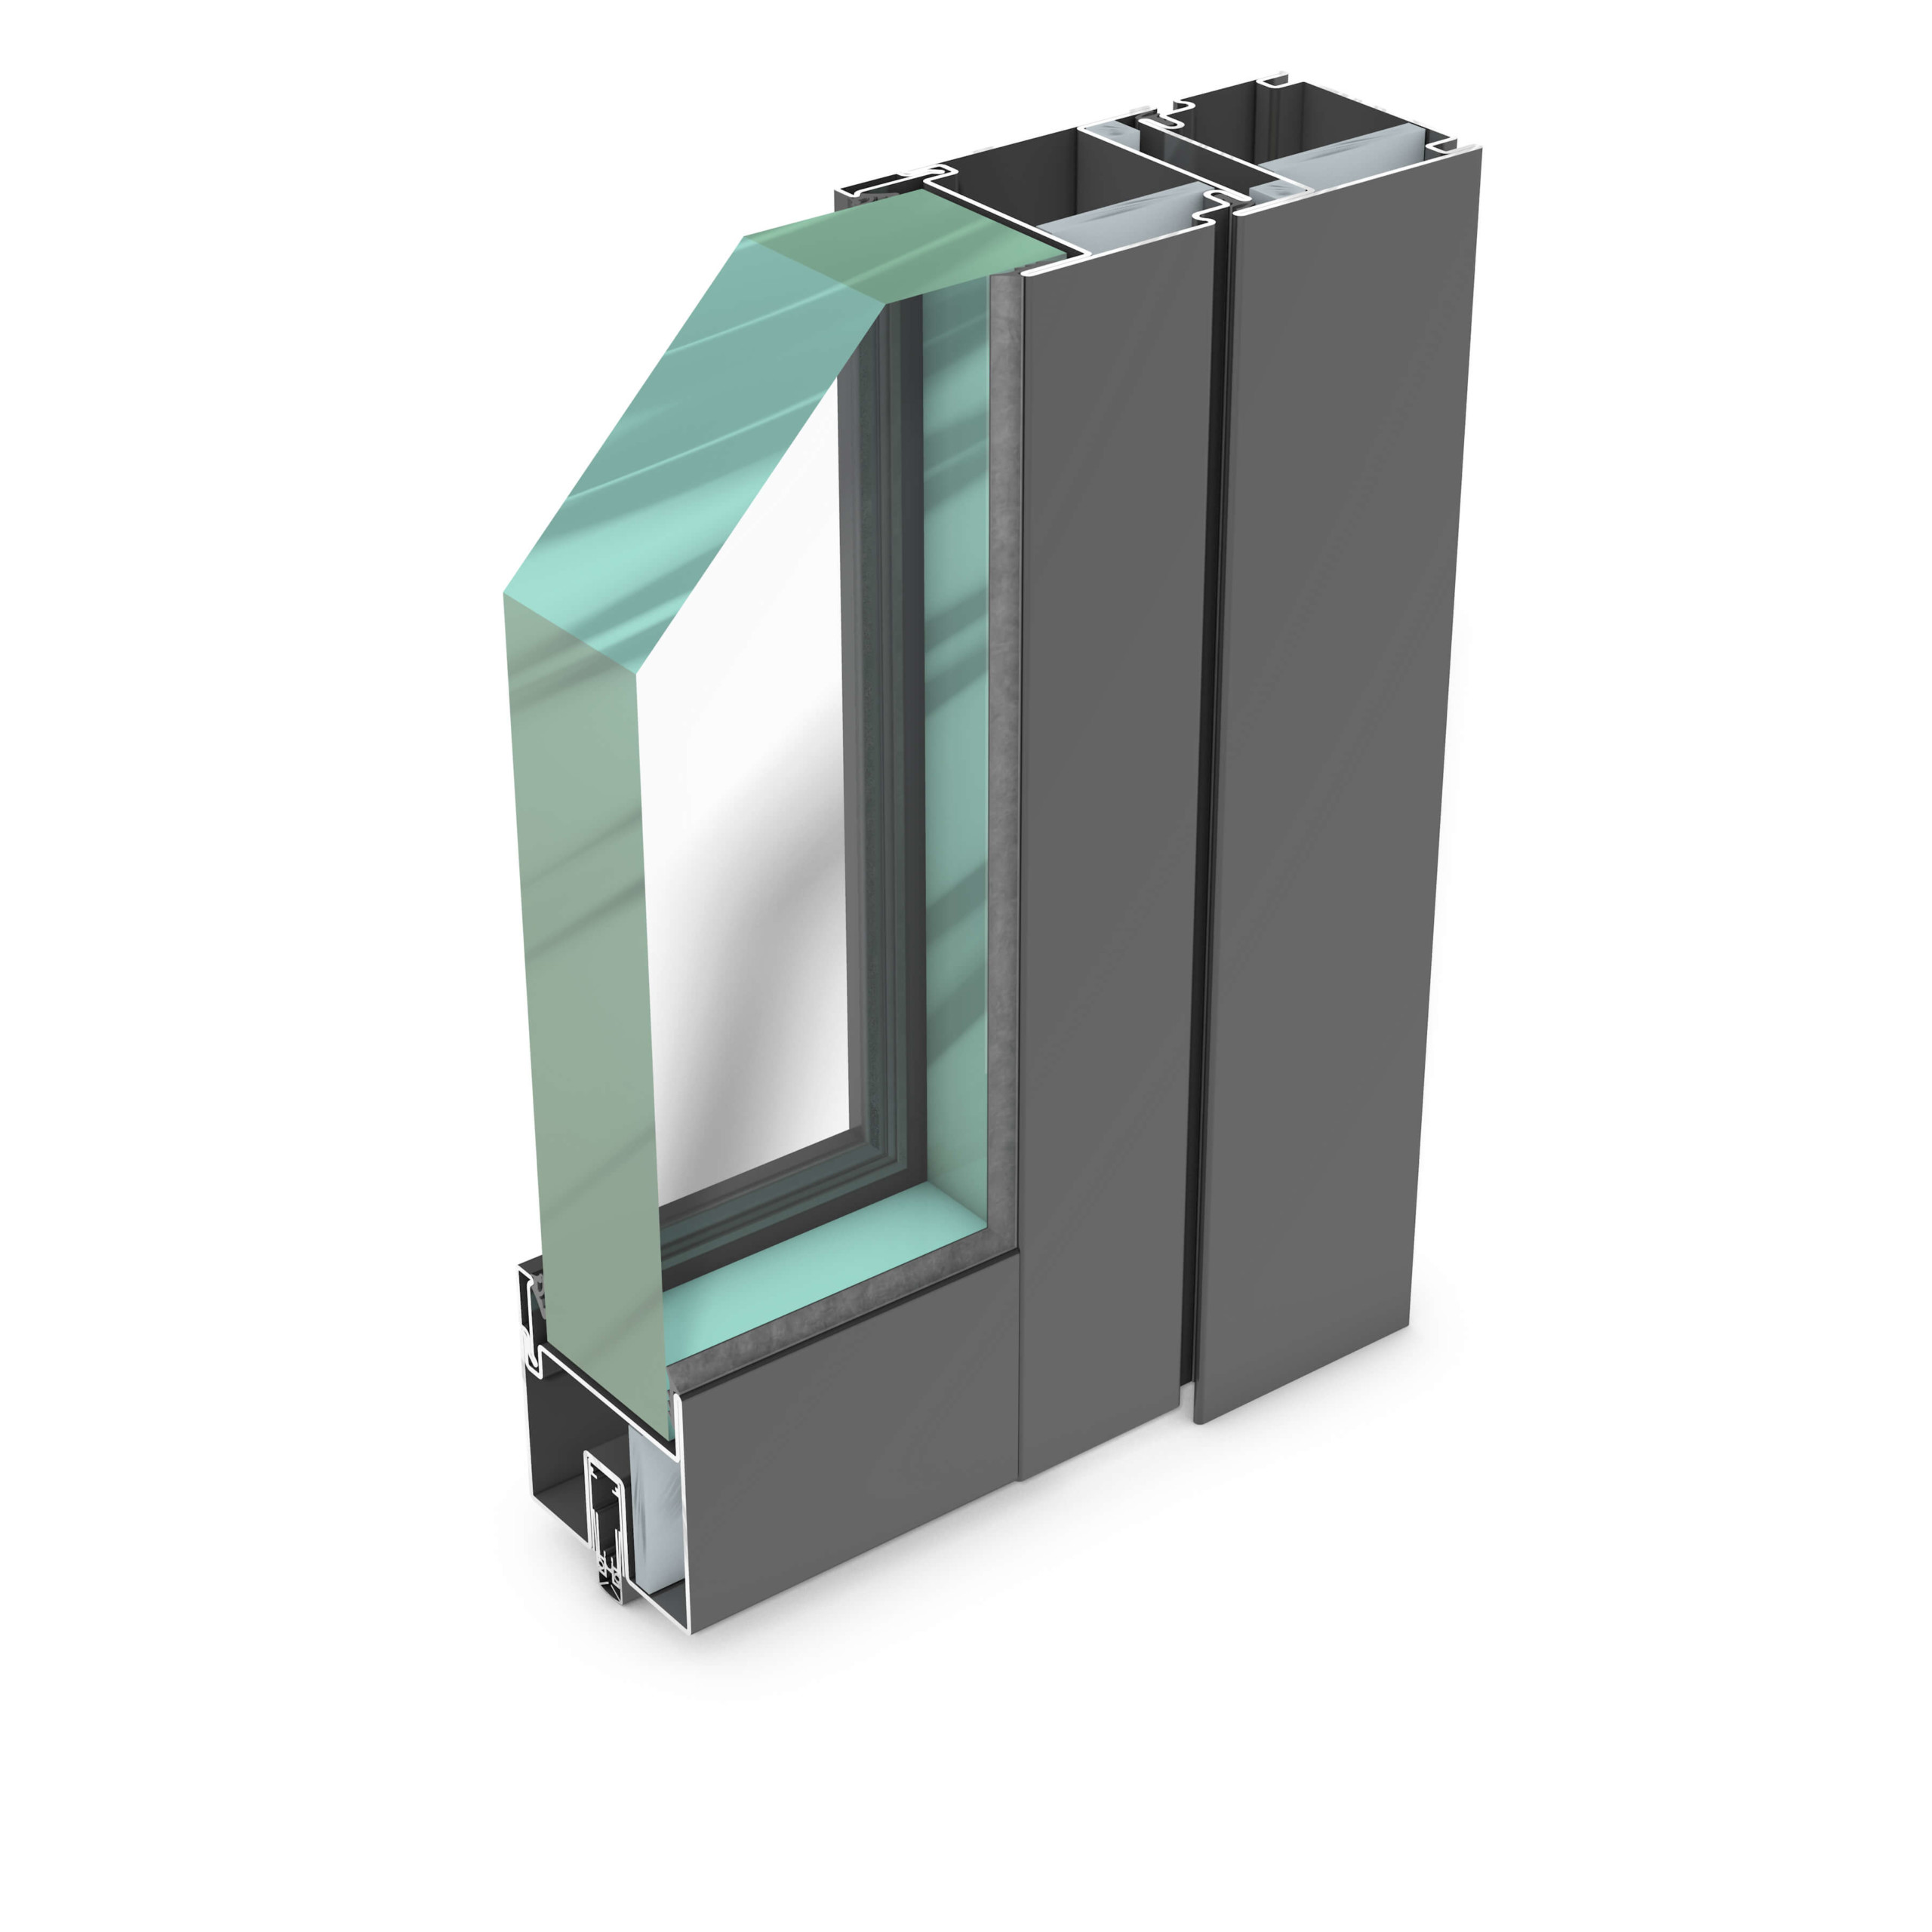 rp hermetic 75BR – bullet resistant steel profile system for doors and partition walls